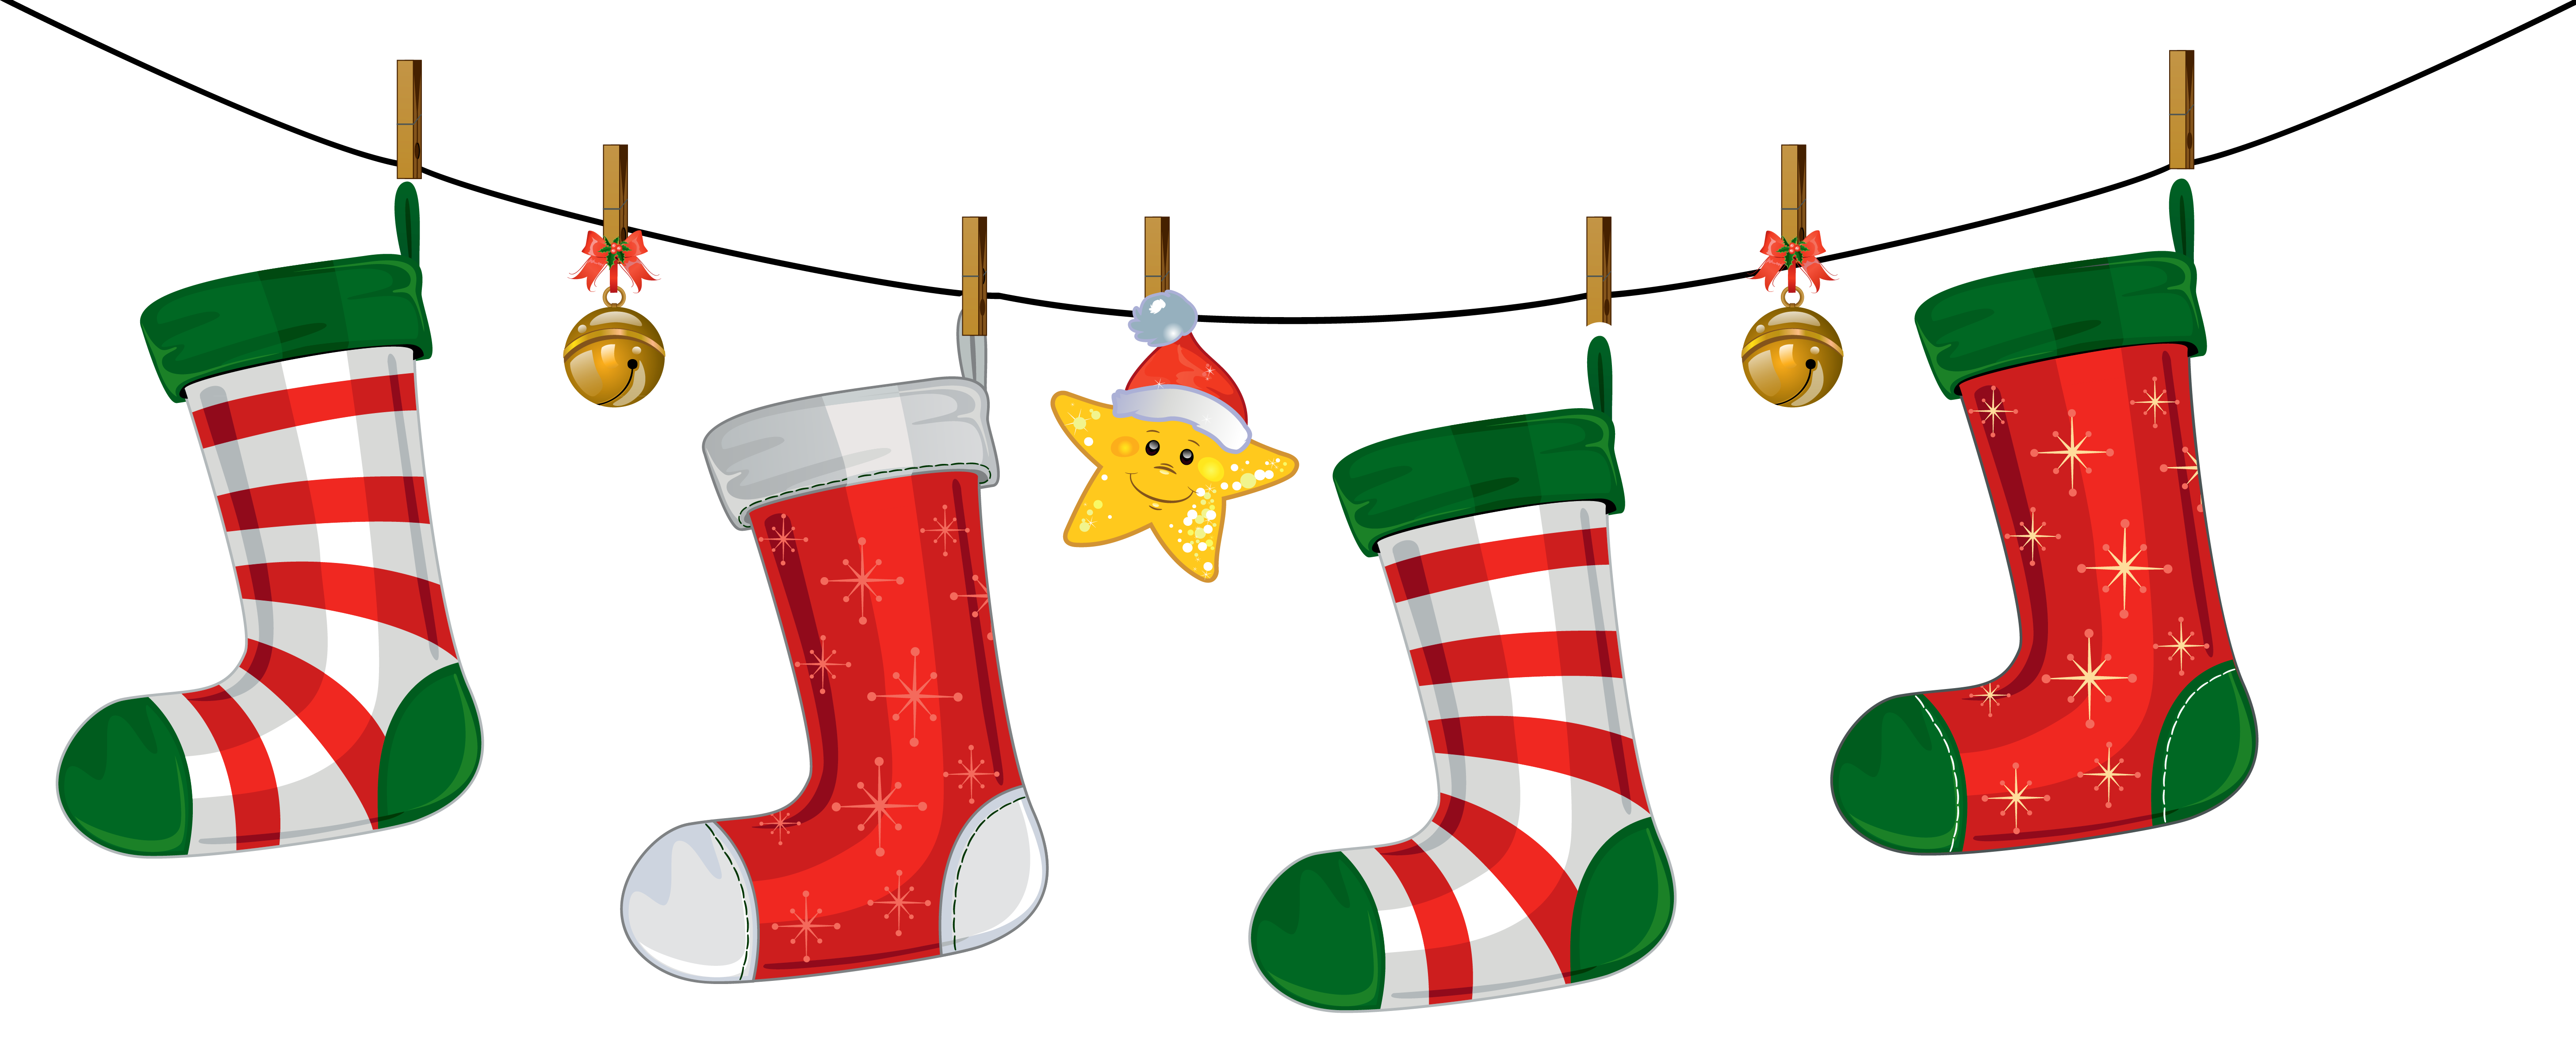 Clip Art Christmas Cliparts christmas no background clipart kid transparent stockings decoration png japoland